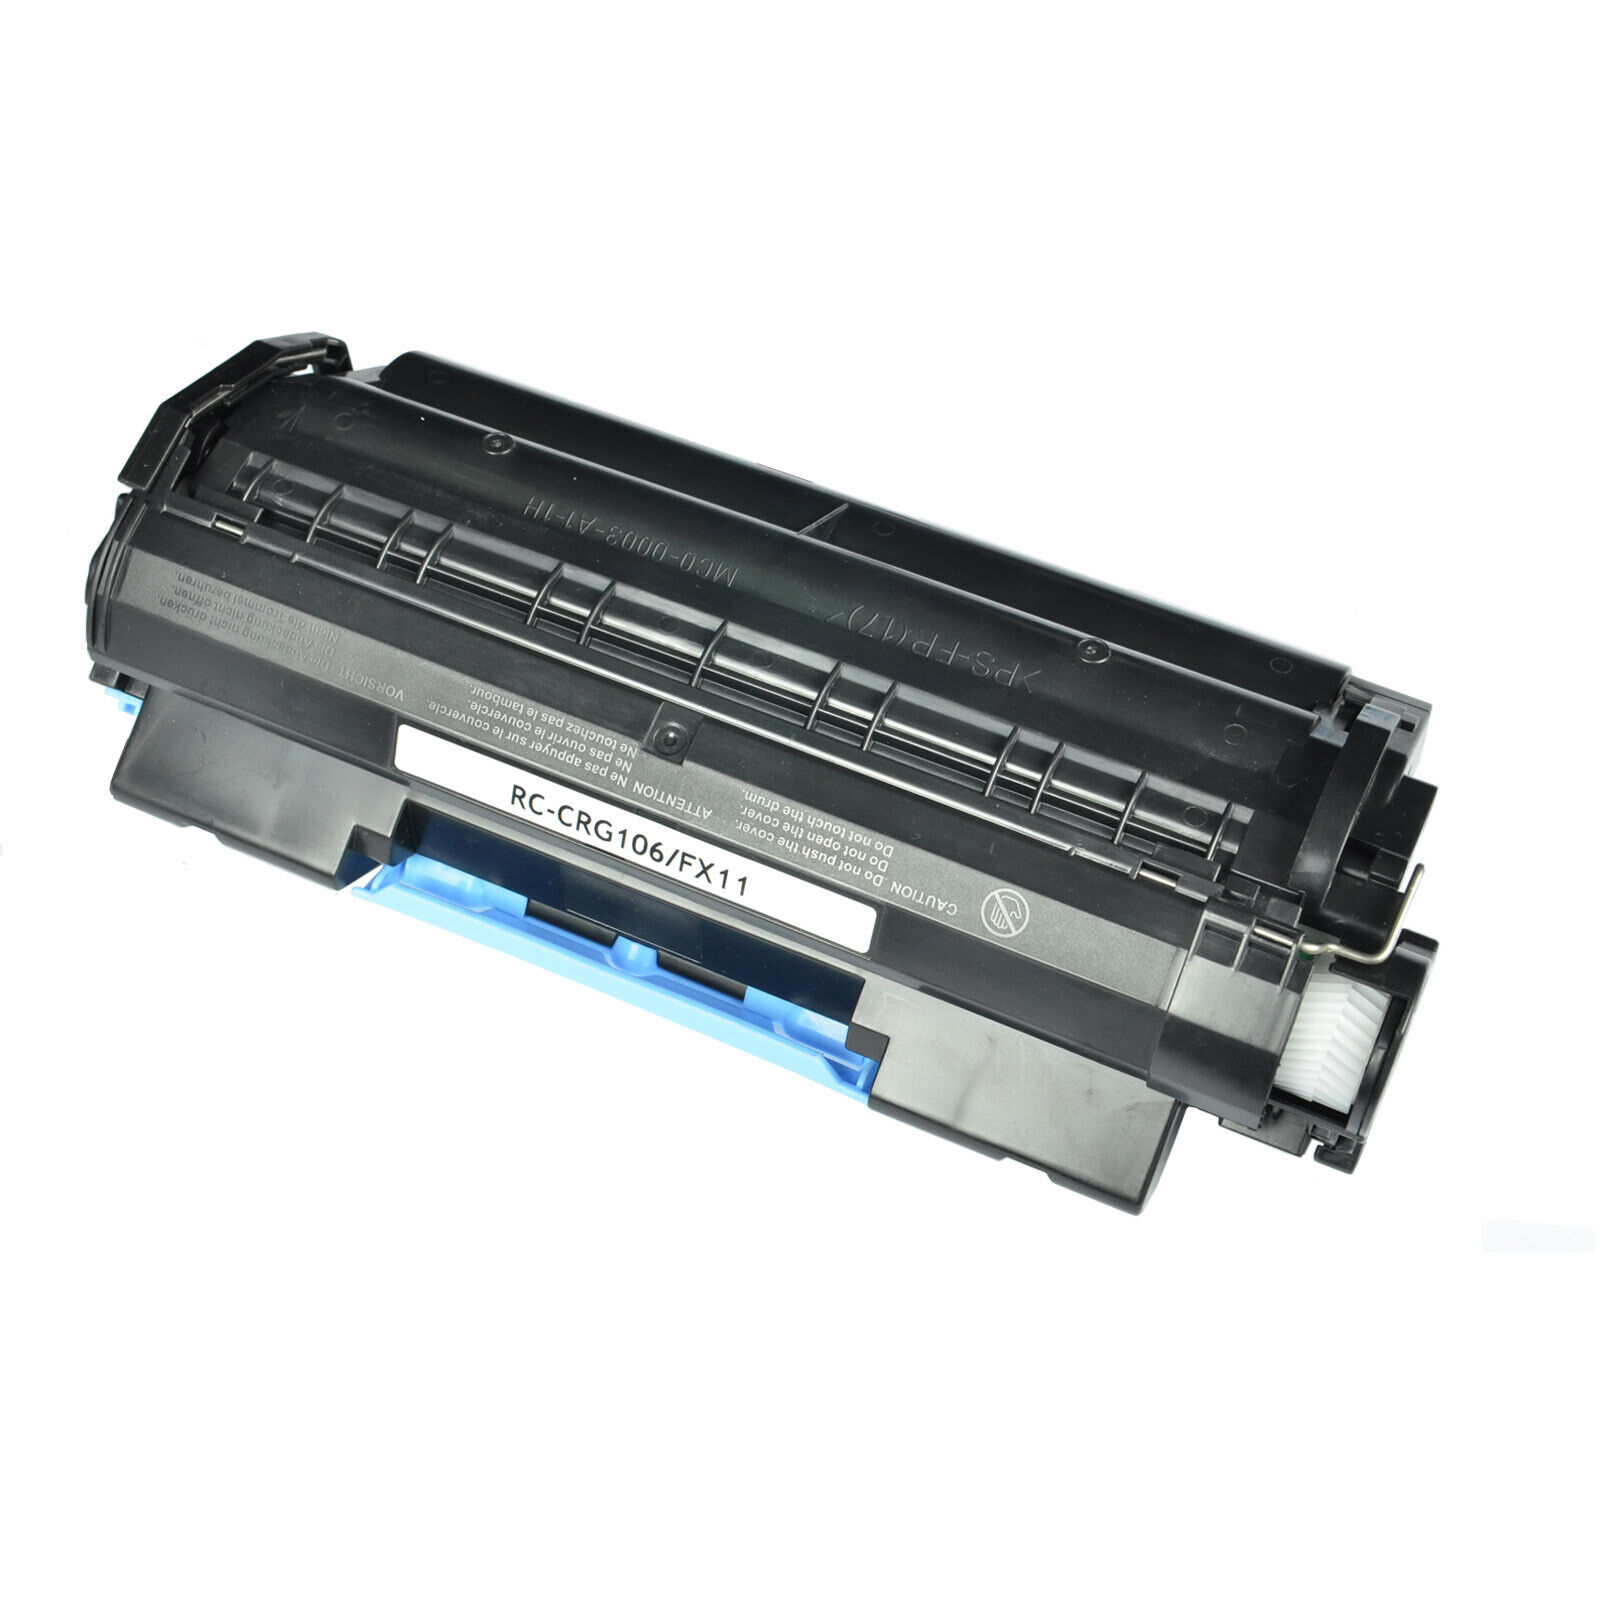 2 Pack Compatible For Canon 106 Laser Class MF6540 0264B001AA Toner Cartridge